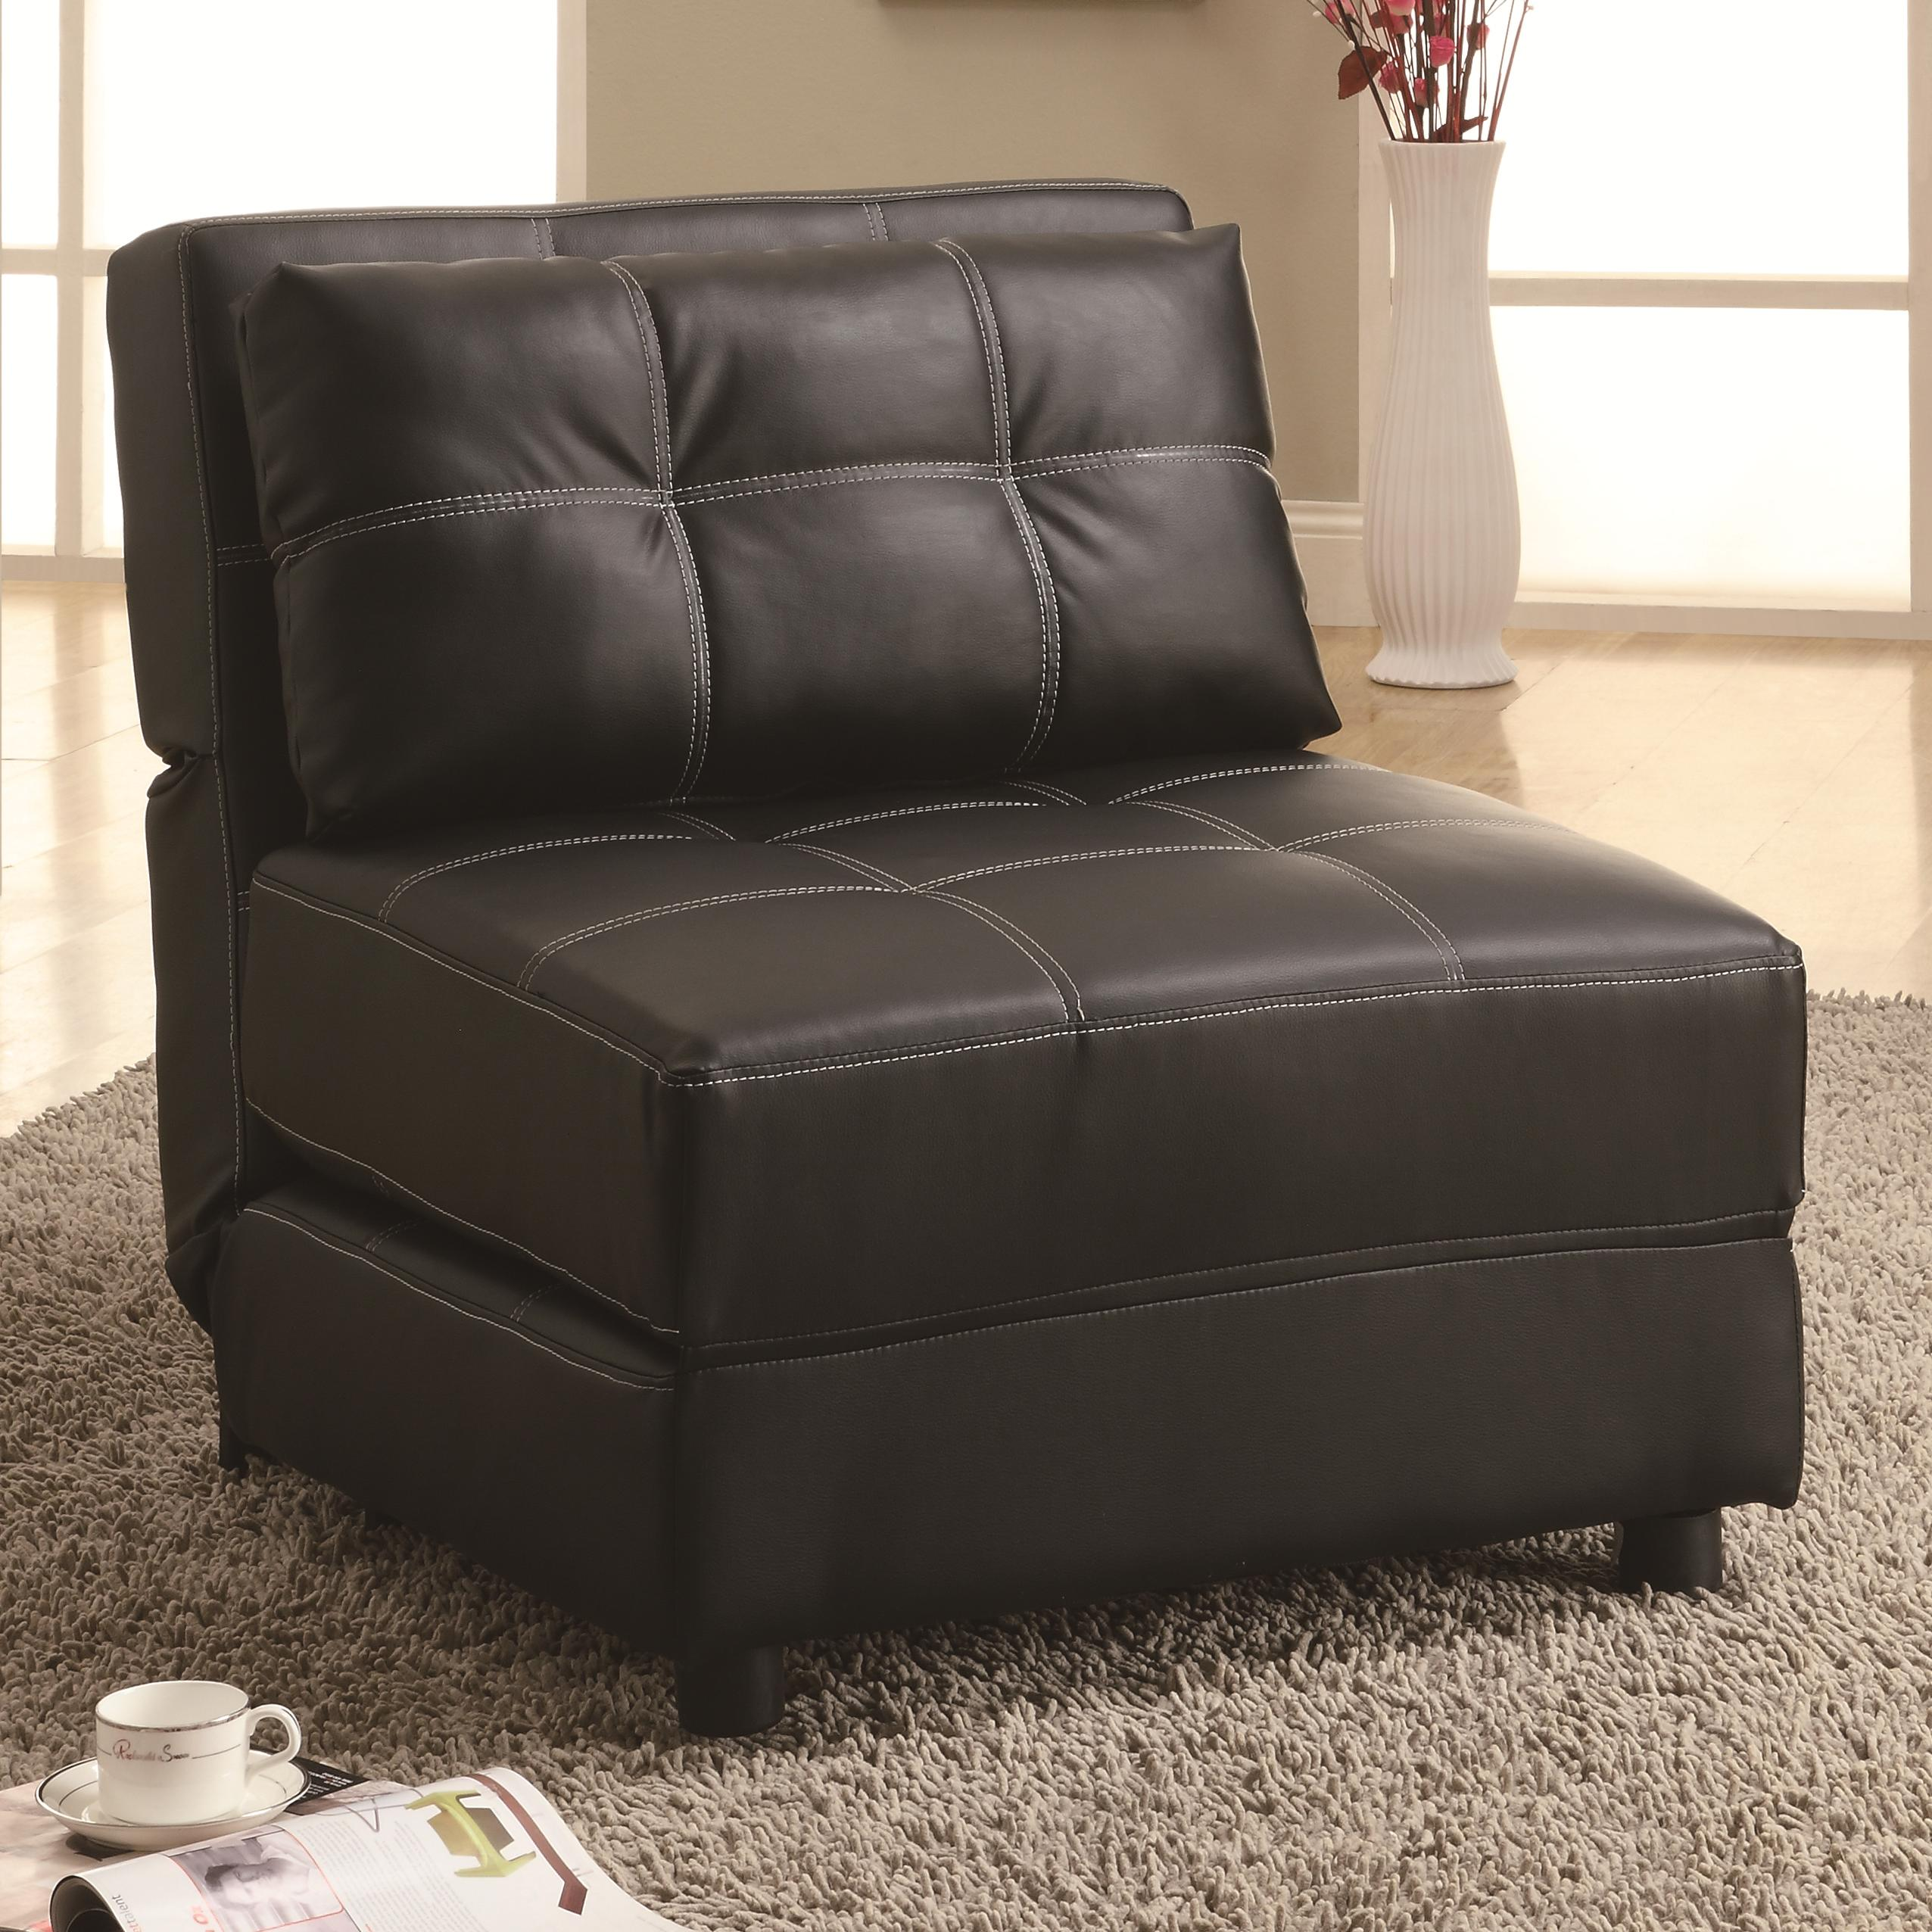 Furniture Living Room Furniture Accent Chair Leather Armless A